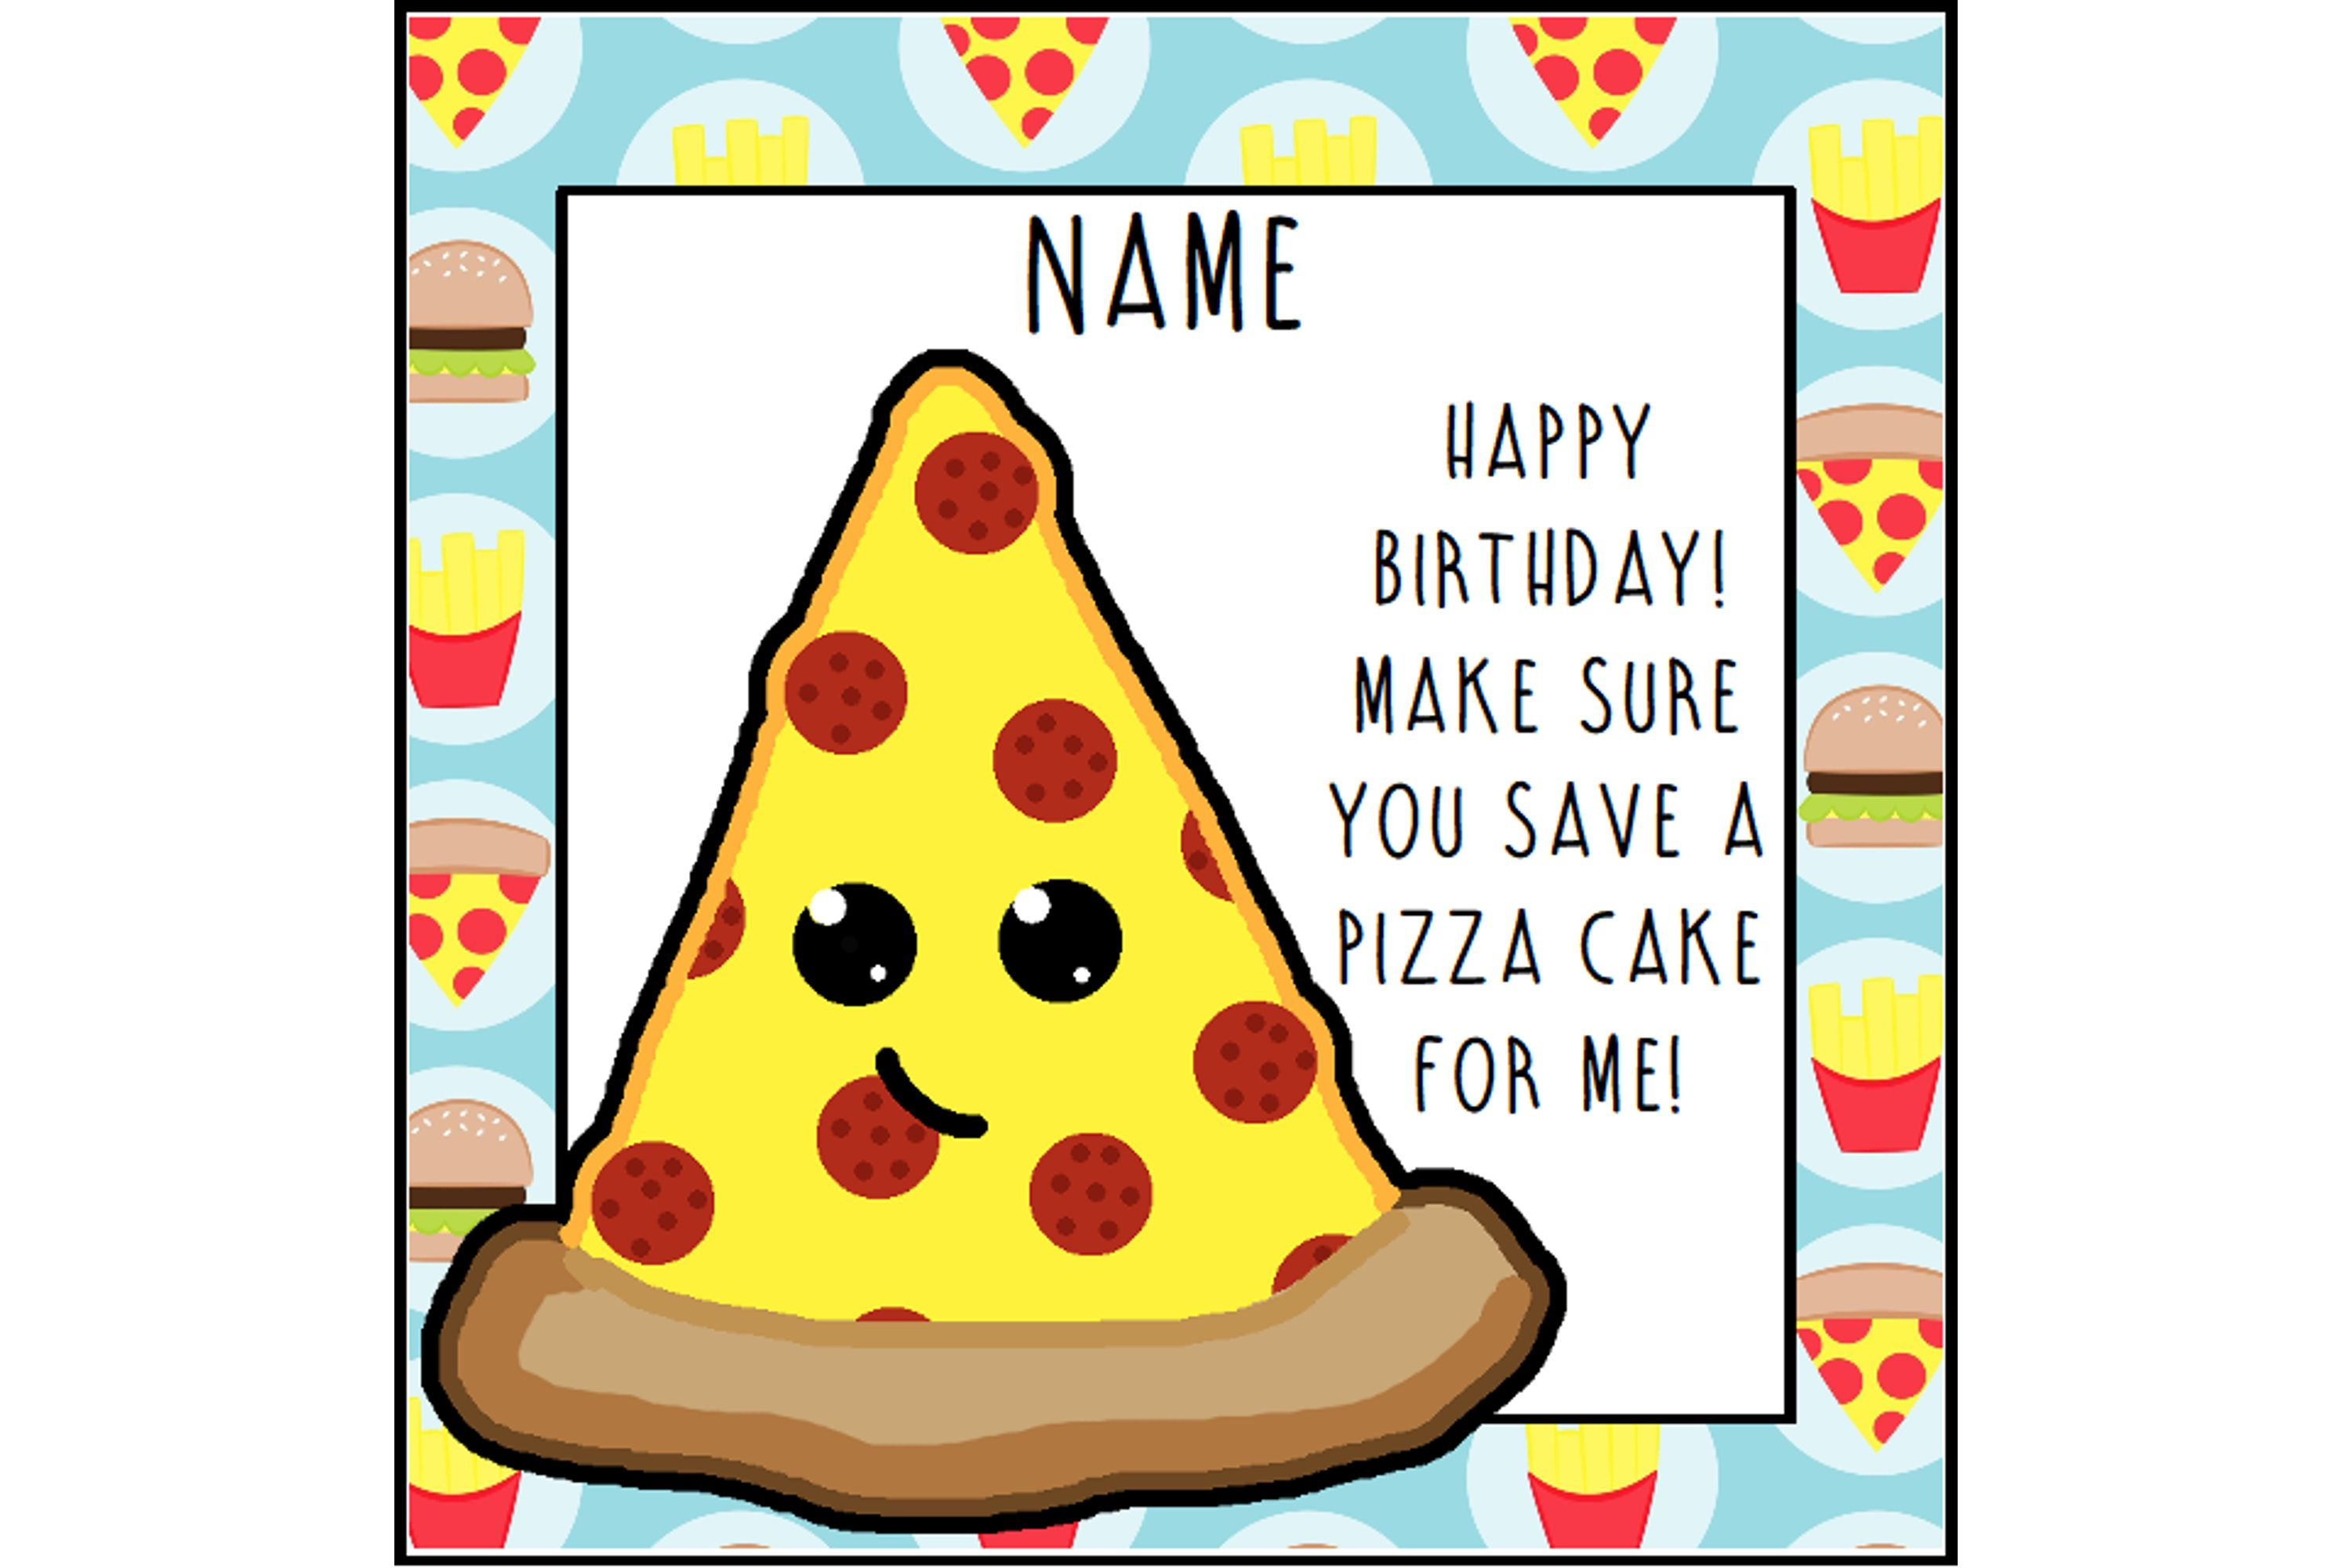 Pizza Birthday Card Funny Greetings Food Lover Foodie Pun Kawaii Junk By ShellsCCC On